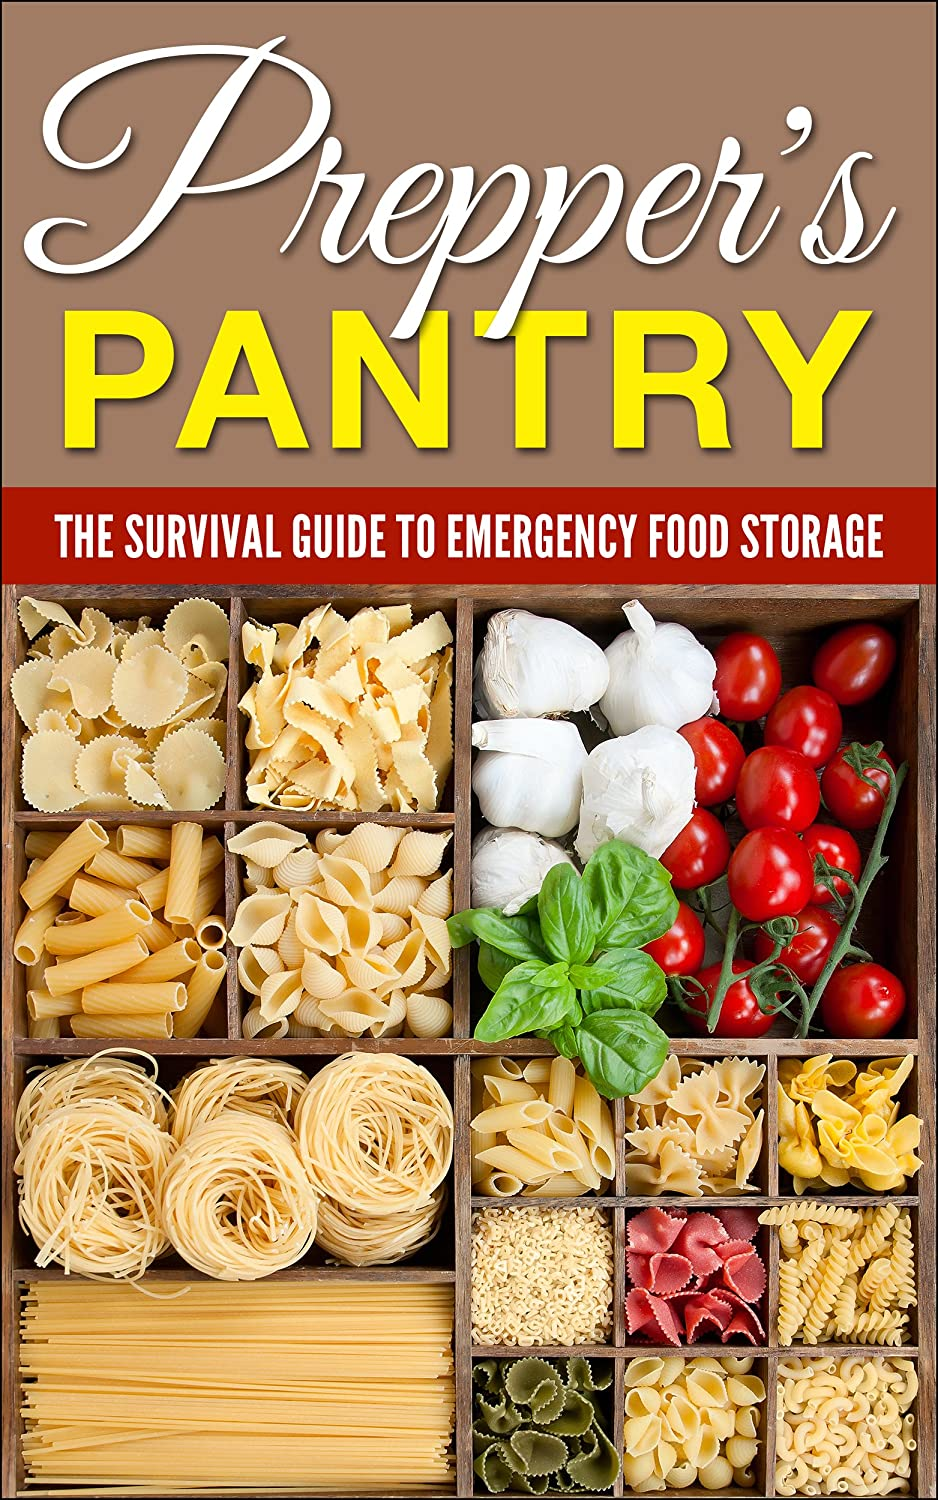 http://www.amazon.com/Preppers-Pantry-Emergency-Preserving-Begginers-ebook/dp/B00PKP7XD2/ref=as_sl_pc_ss_til?tag=lettfromahome-20&linkCode=w01&linkId=ERLTW22J7GPL565O&creativeASIN=B00PKP7XD2